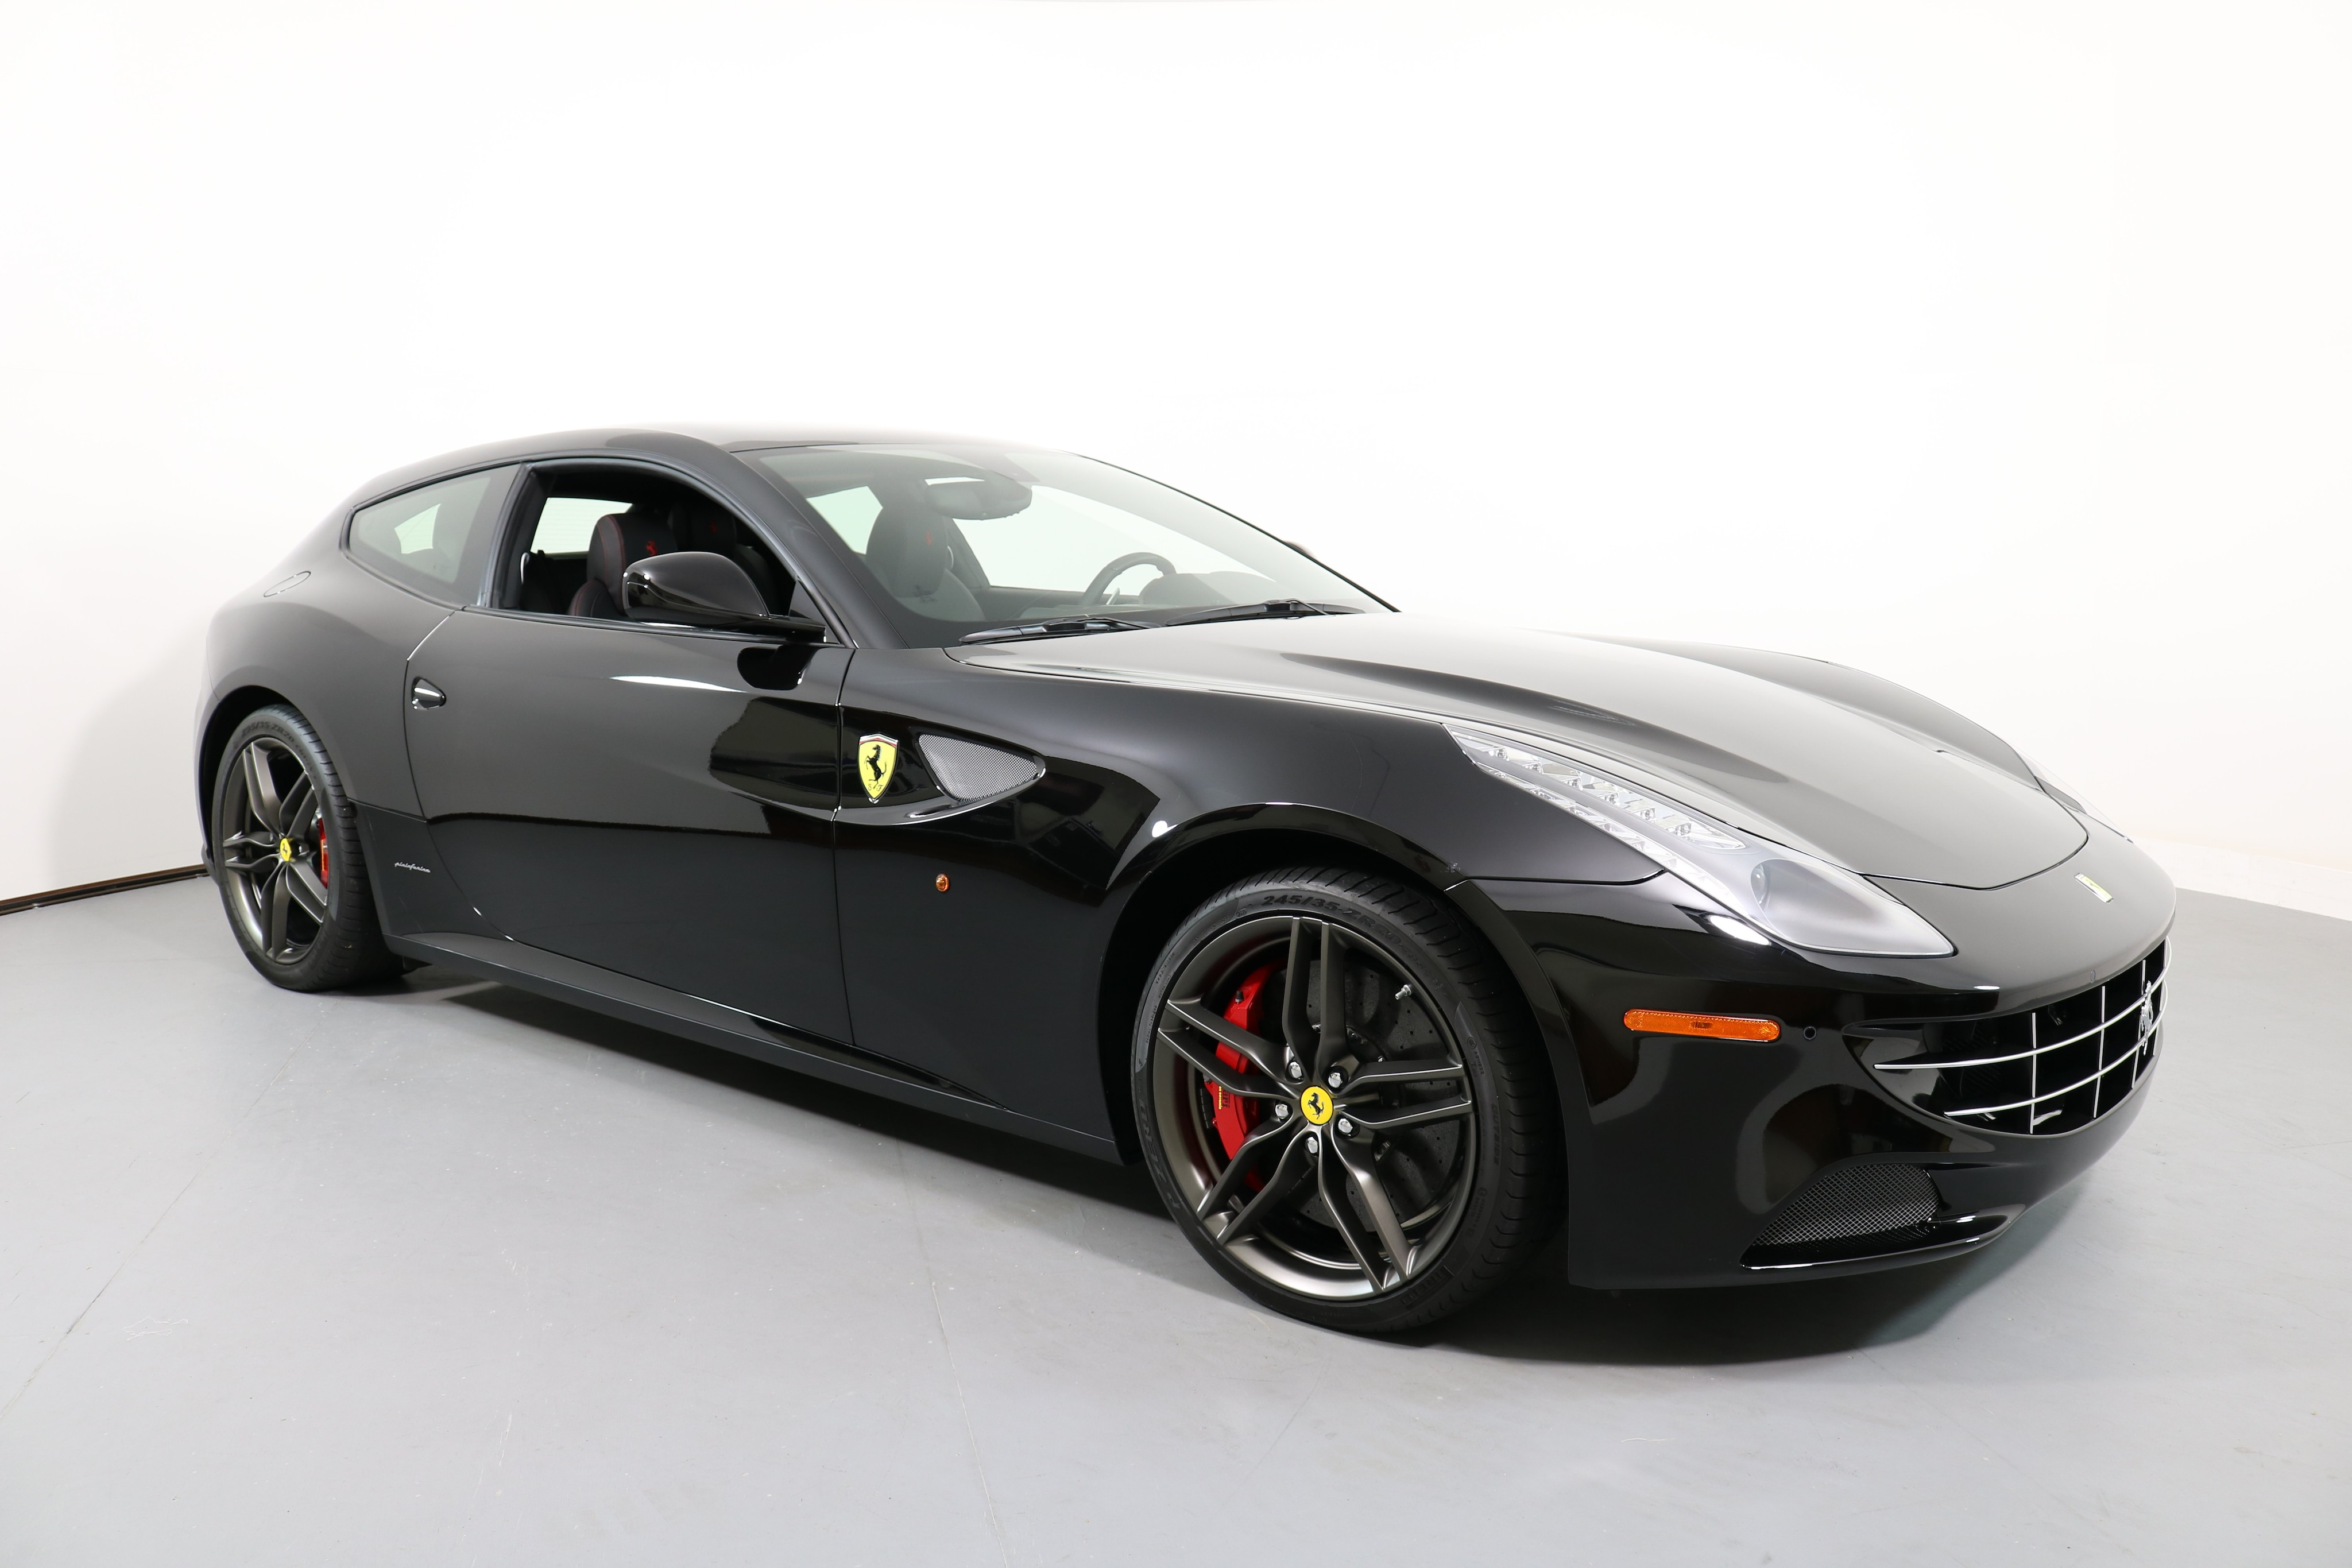 Used 2016 Ferrari Ff San Francisco Ca Zff73ska8g0216021 Serving The Bay Area Mill Valley San Rafael Redwood City And Silicon Valley